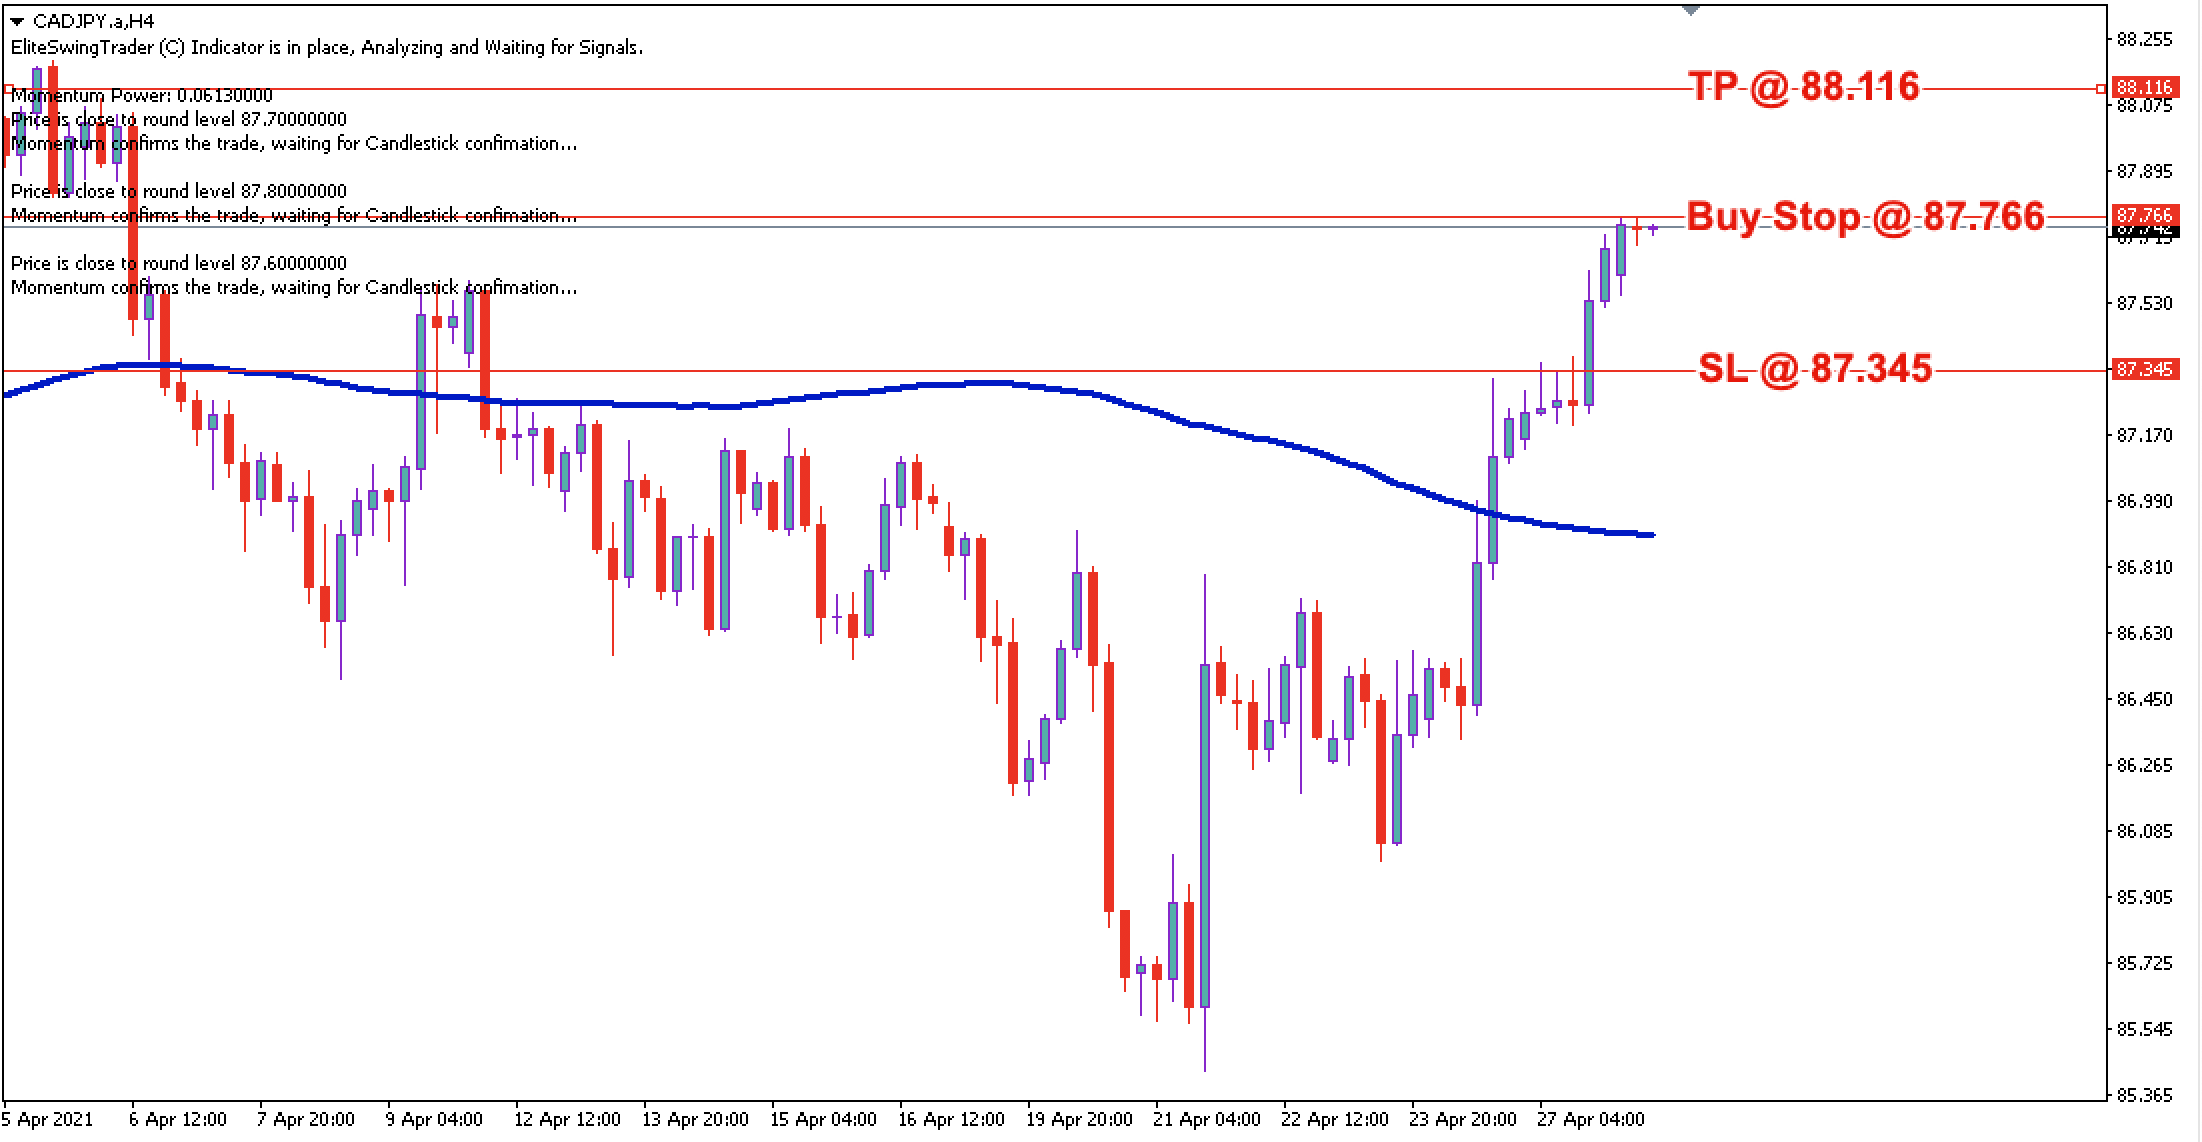 CAD/JPY Daily Price Forecast – 28th April 2021